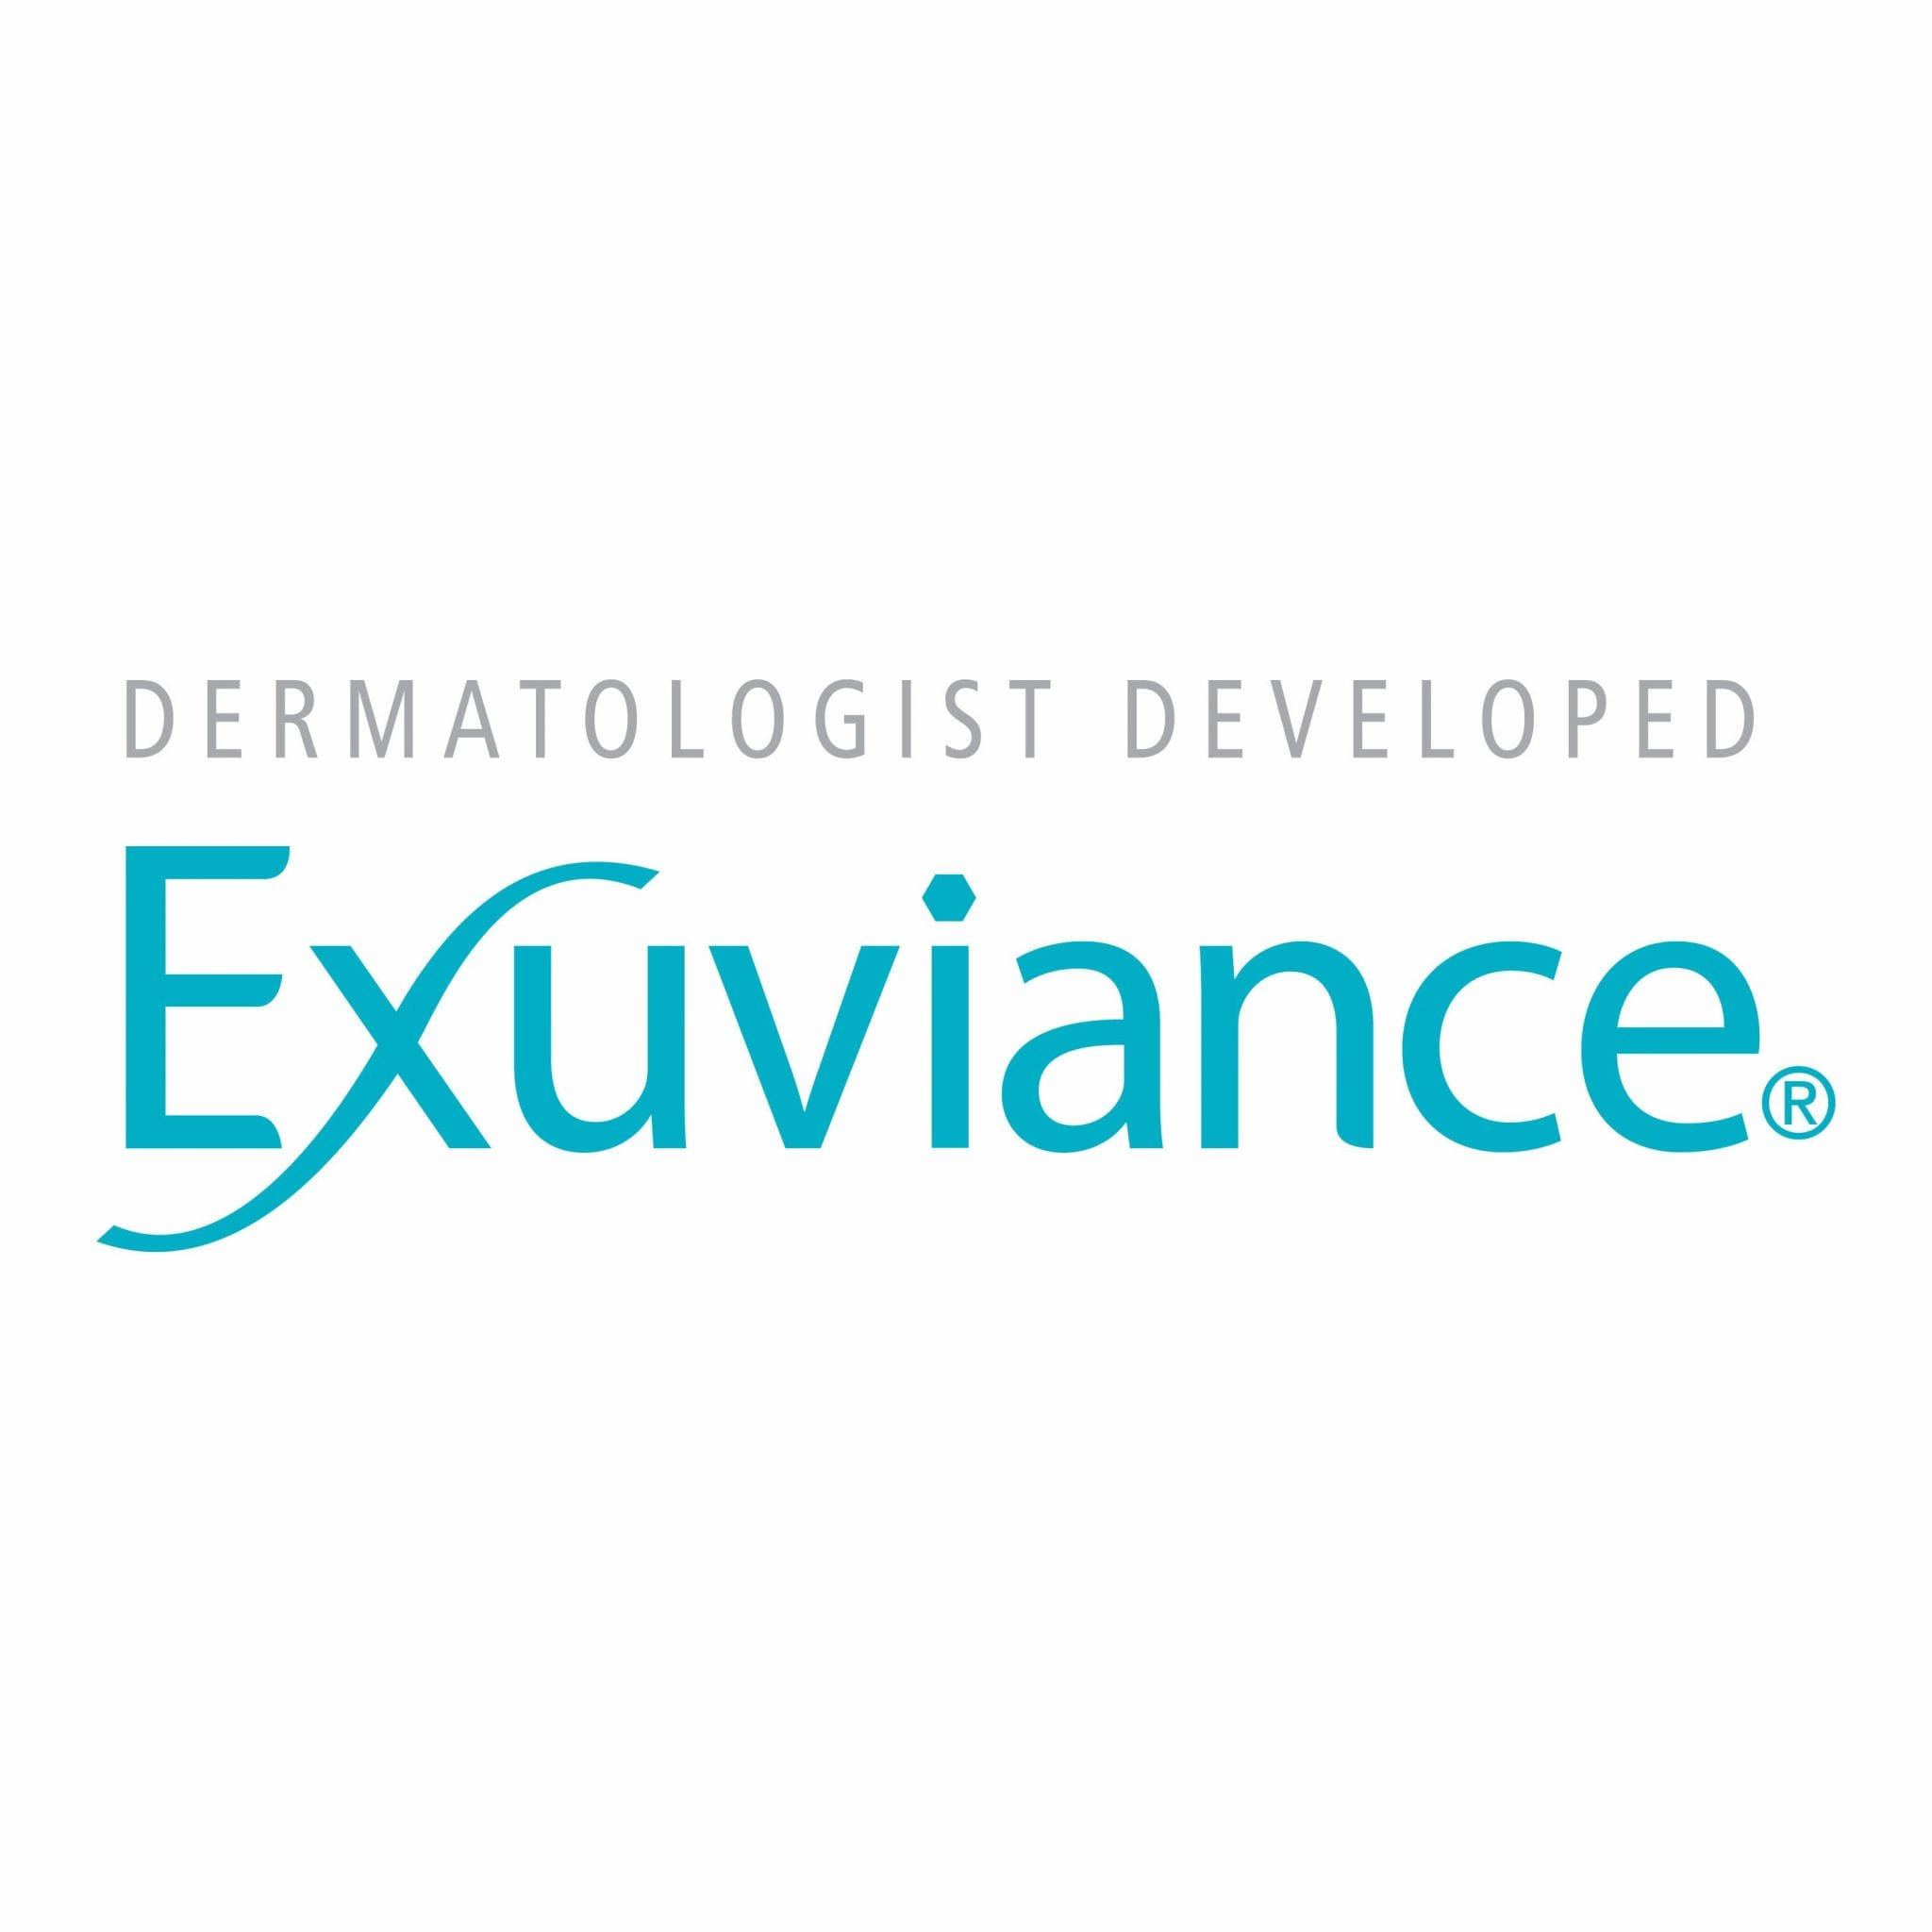 E! Exuviance® Up to 30% off sitewide